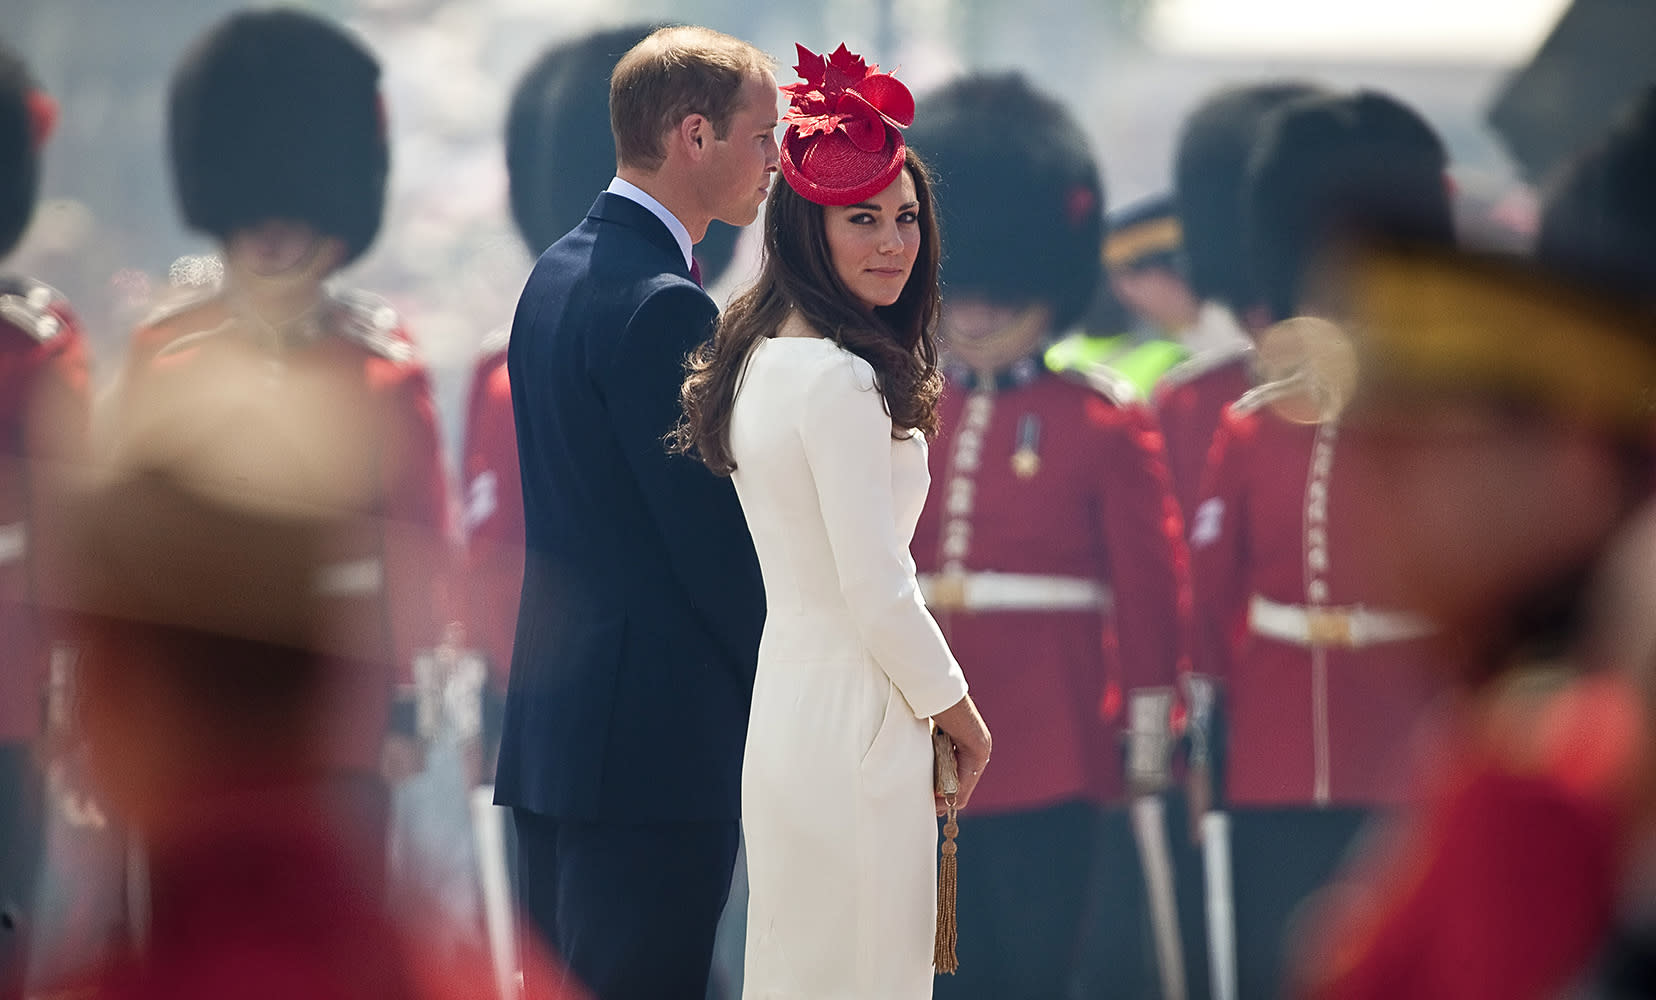 Kate looks over her shoulder as she and Wills attend Canada Day celebrations in Ottowa. She was wearing a white Reiss dress with bold red accents in her fascinator and heels.